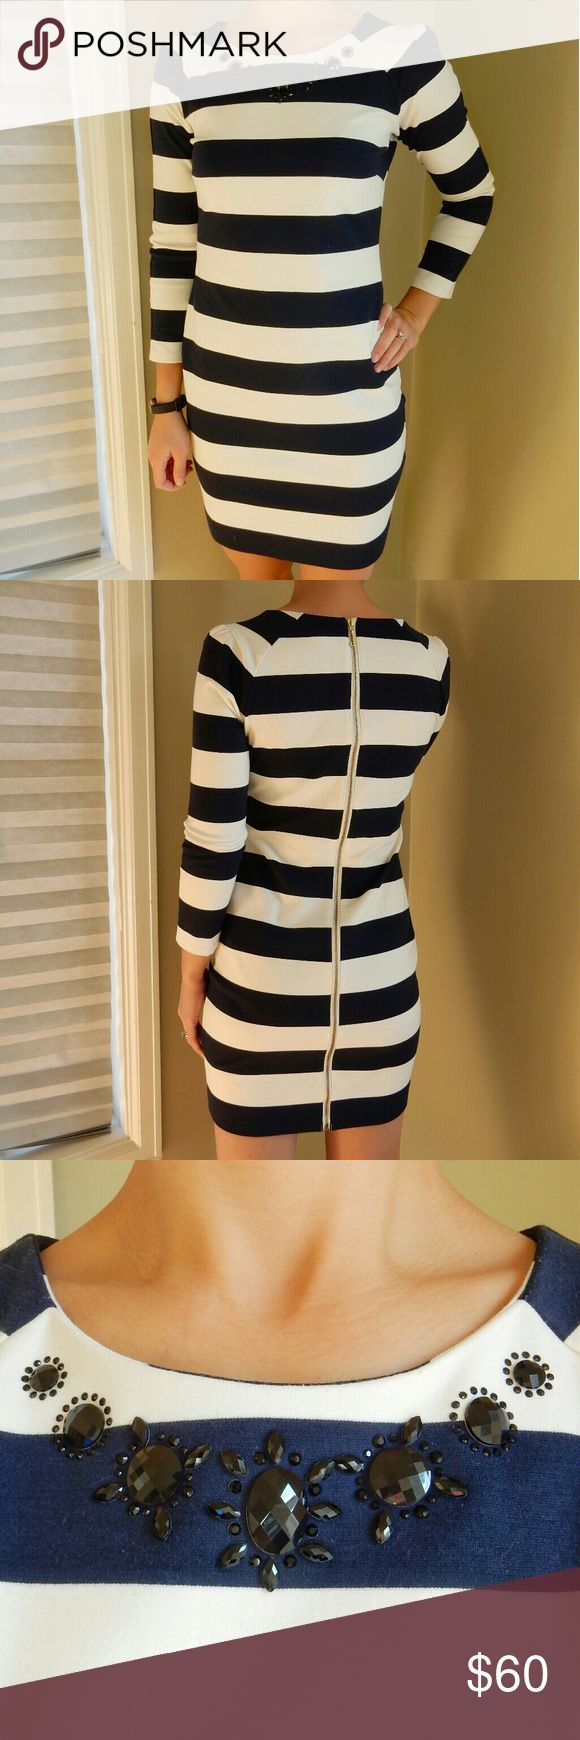 Juicy Couture 3/4 Sleeve Striped Cocktail Dress Juicy Couture navy and white striped cocktail dress. 74% polyester, 22% viscose, 4% elastane. Gold zipper detail on back full length of dress. Black plastic beading detail on front neckline. Perfect for fall/winter events! Juicy Couture Dresses Long Sleeve